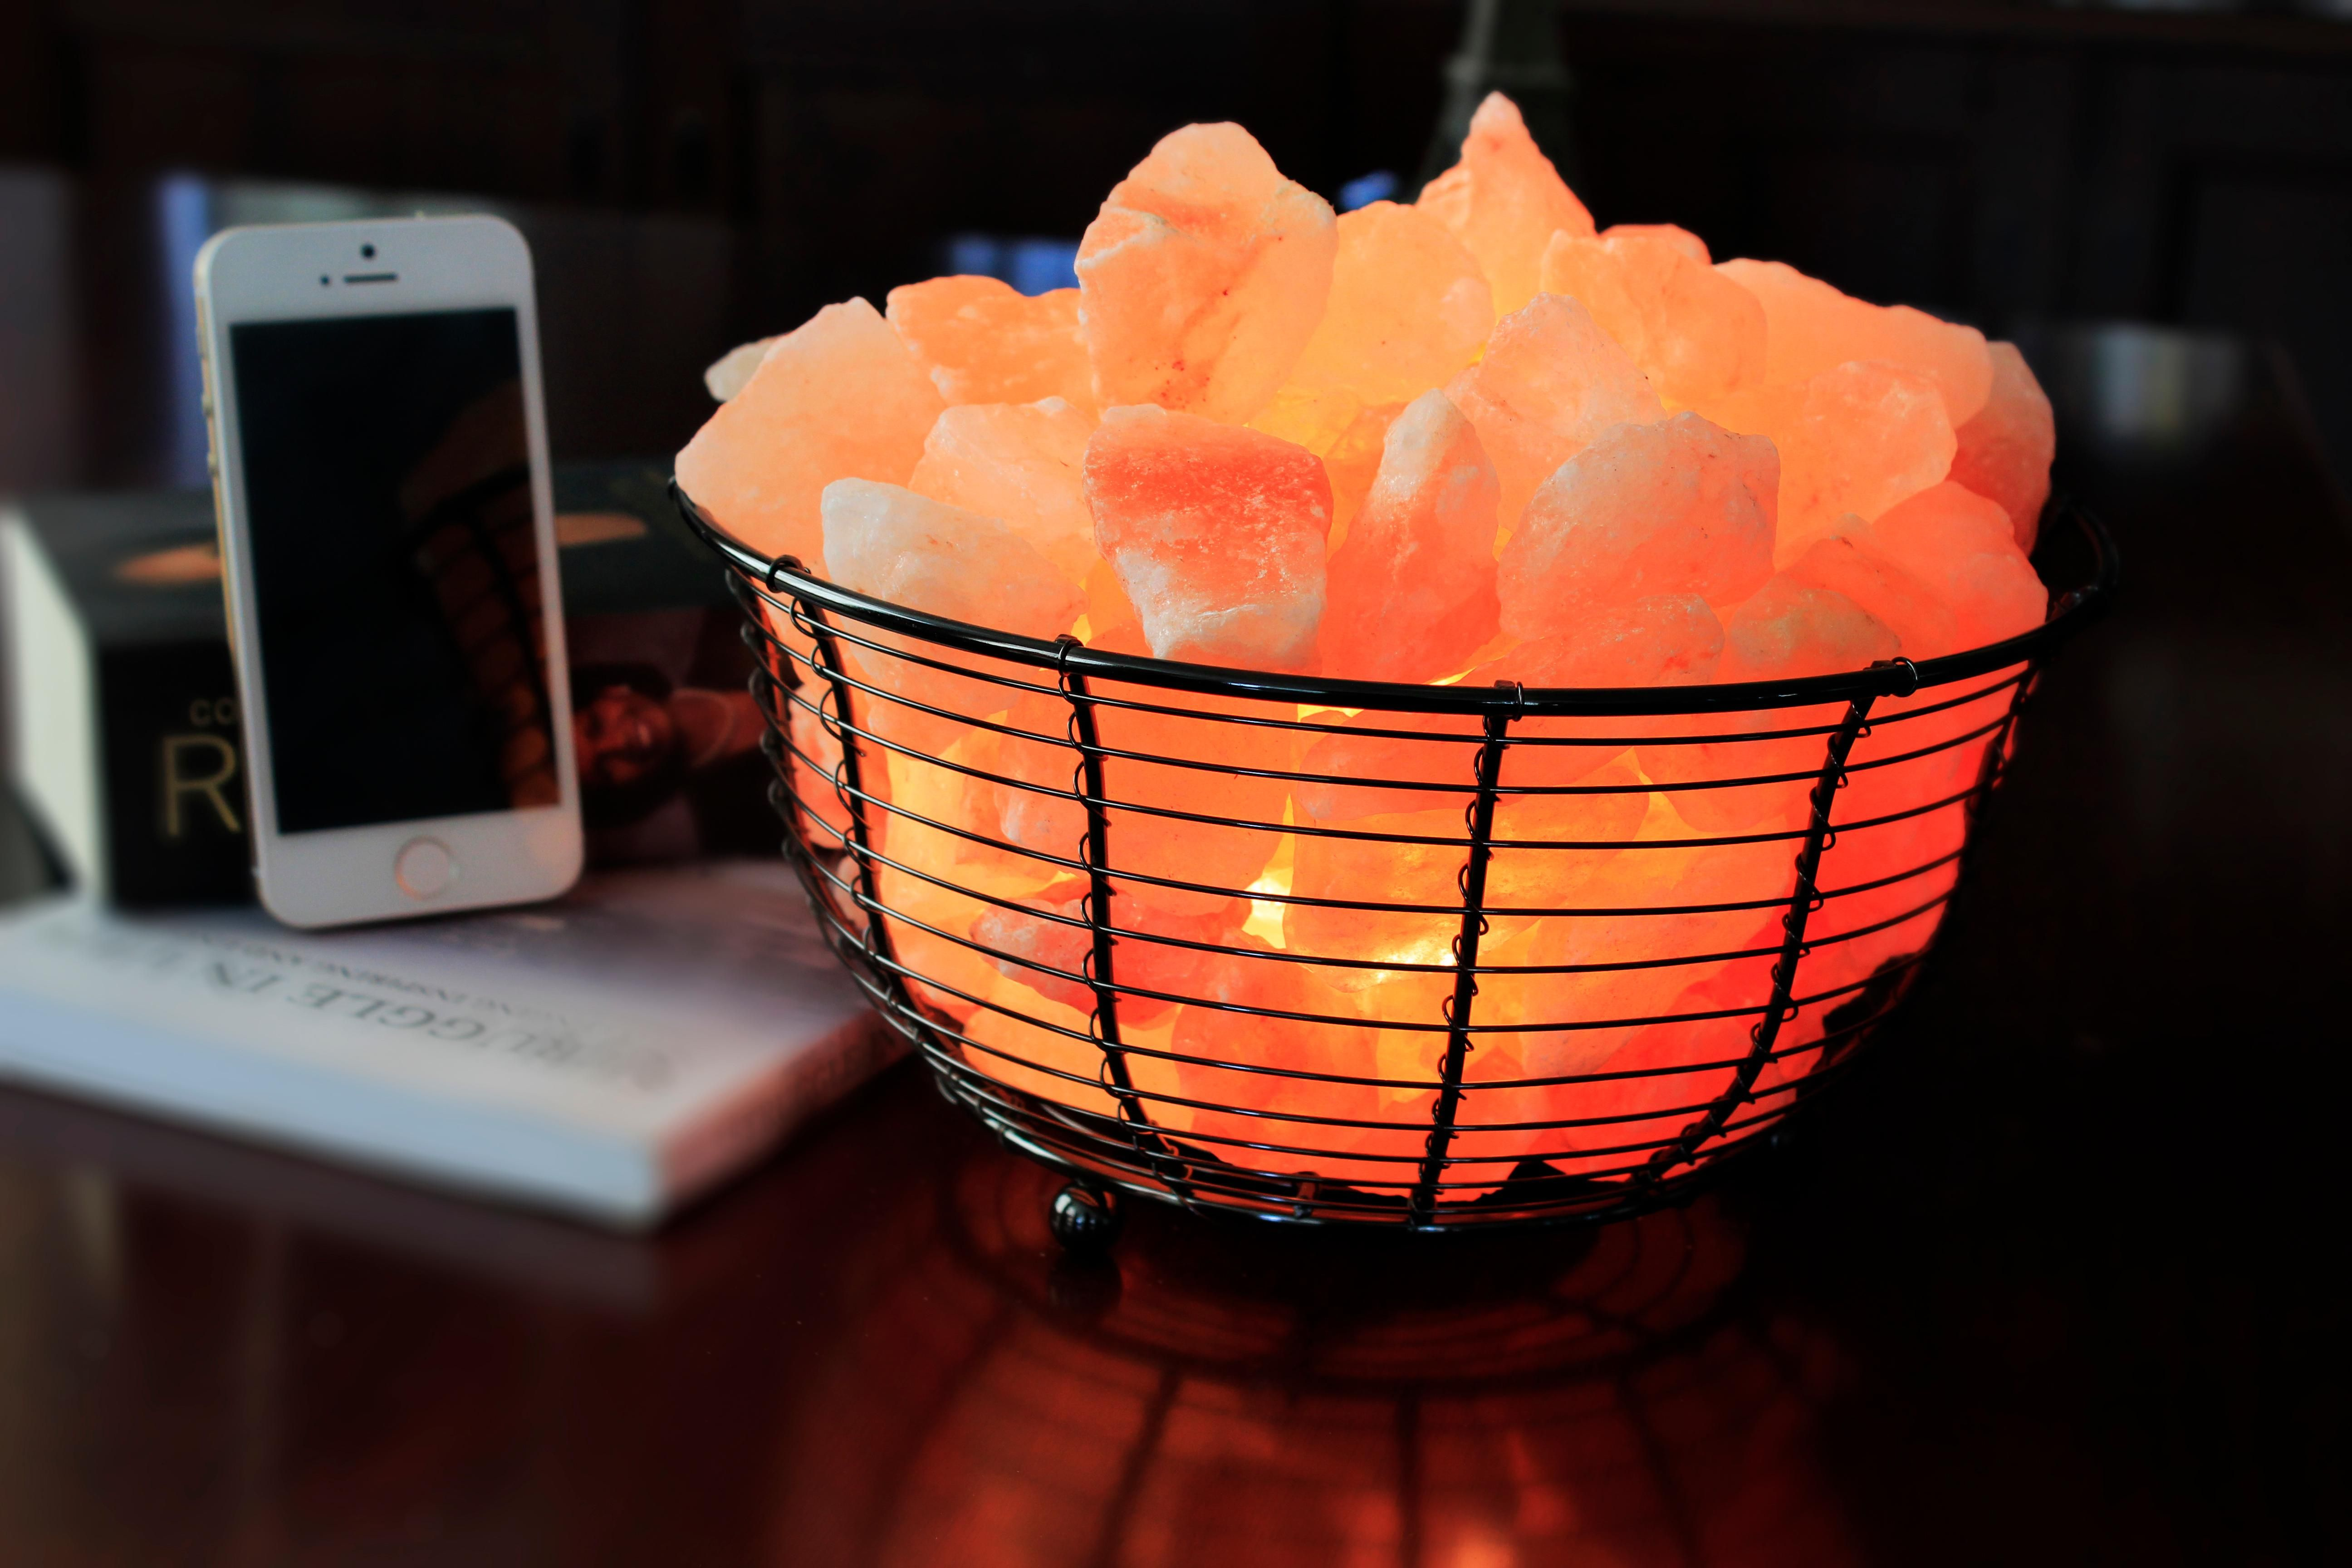 Wbm Salt Lamp Cool These 8 Bathroom Decorations Are Blowing Up Not Only Are These Review